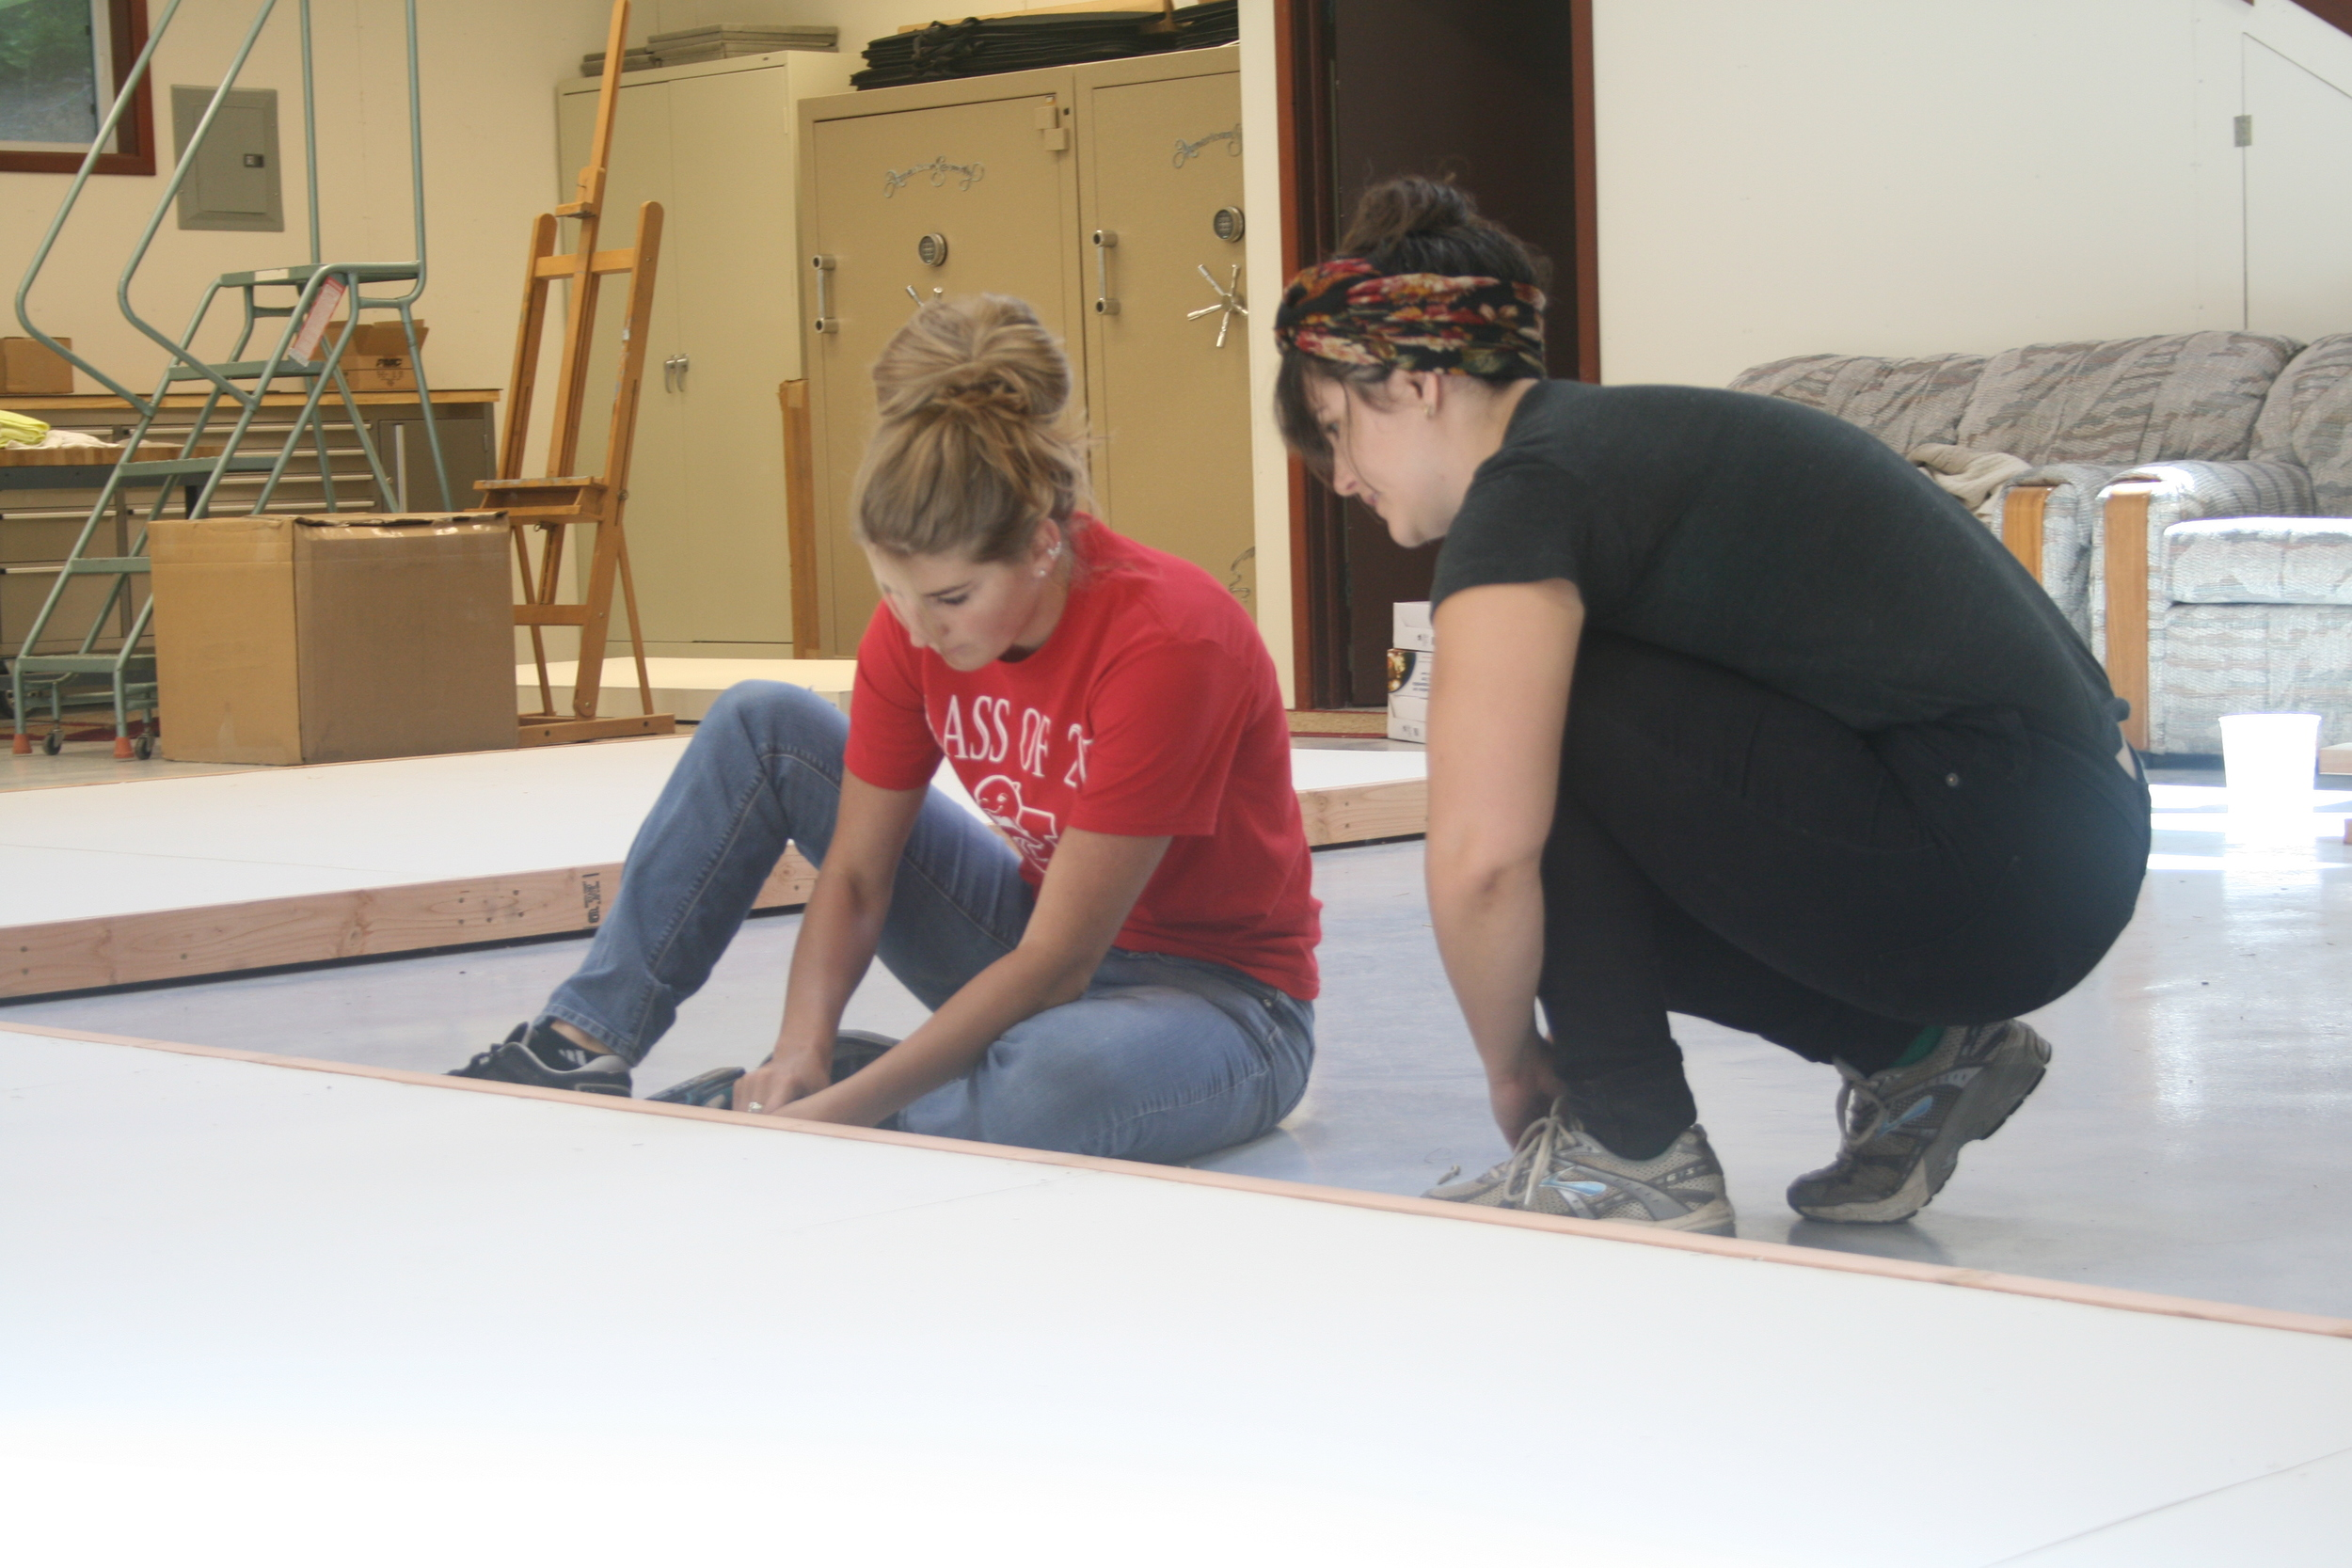 Project 387 intern Jeannette Stefani and board member Sarah Koik finish up the framing.